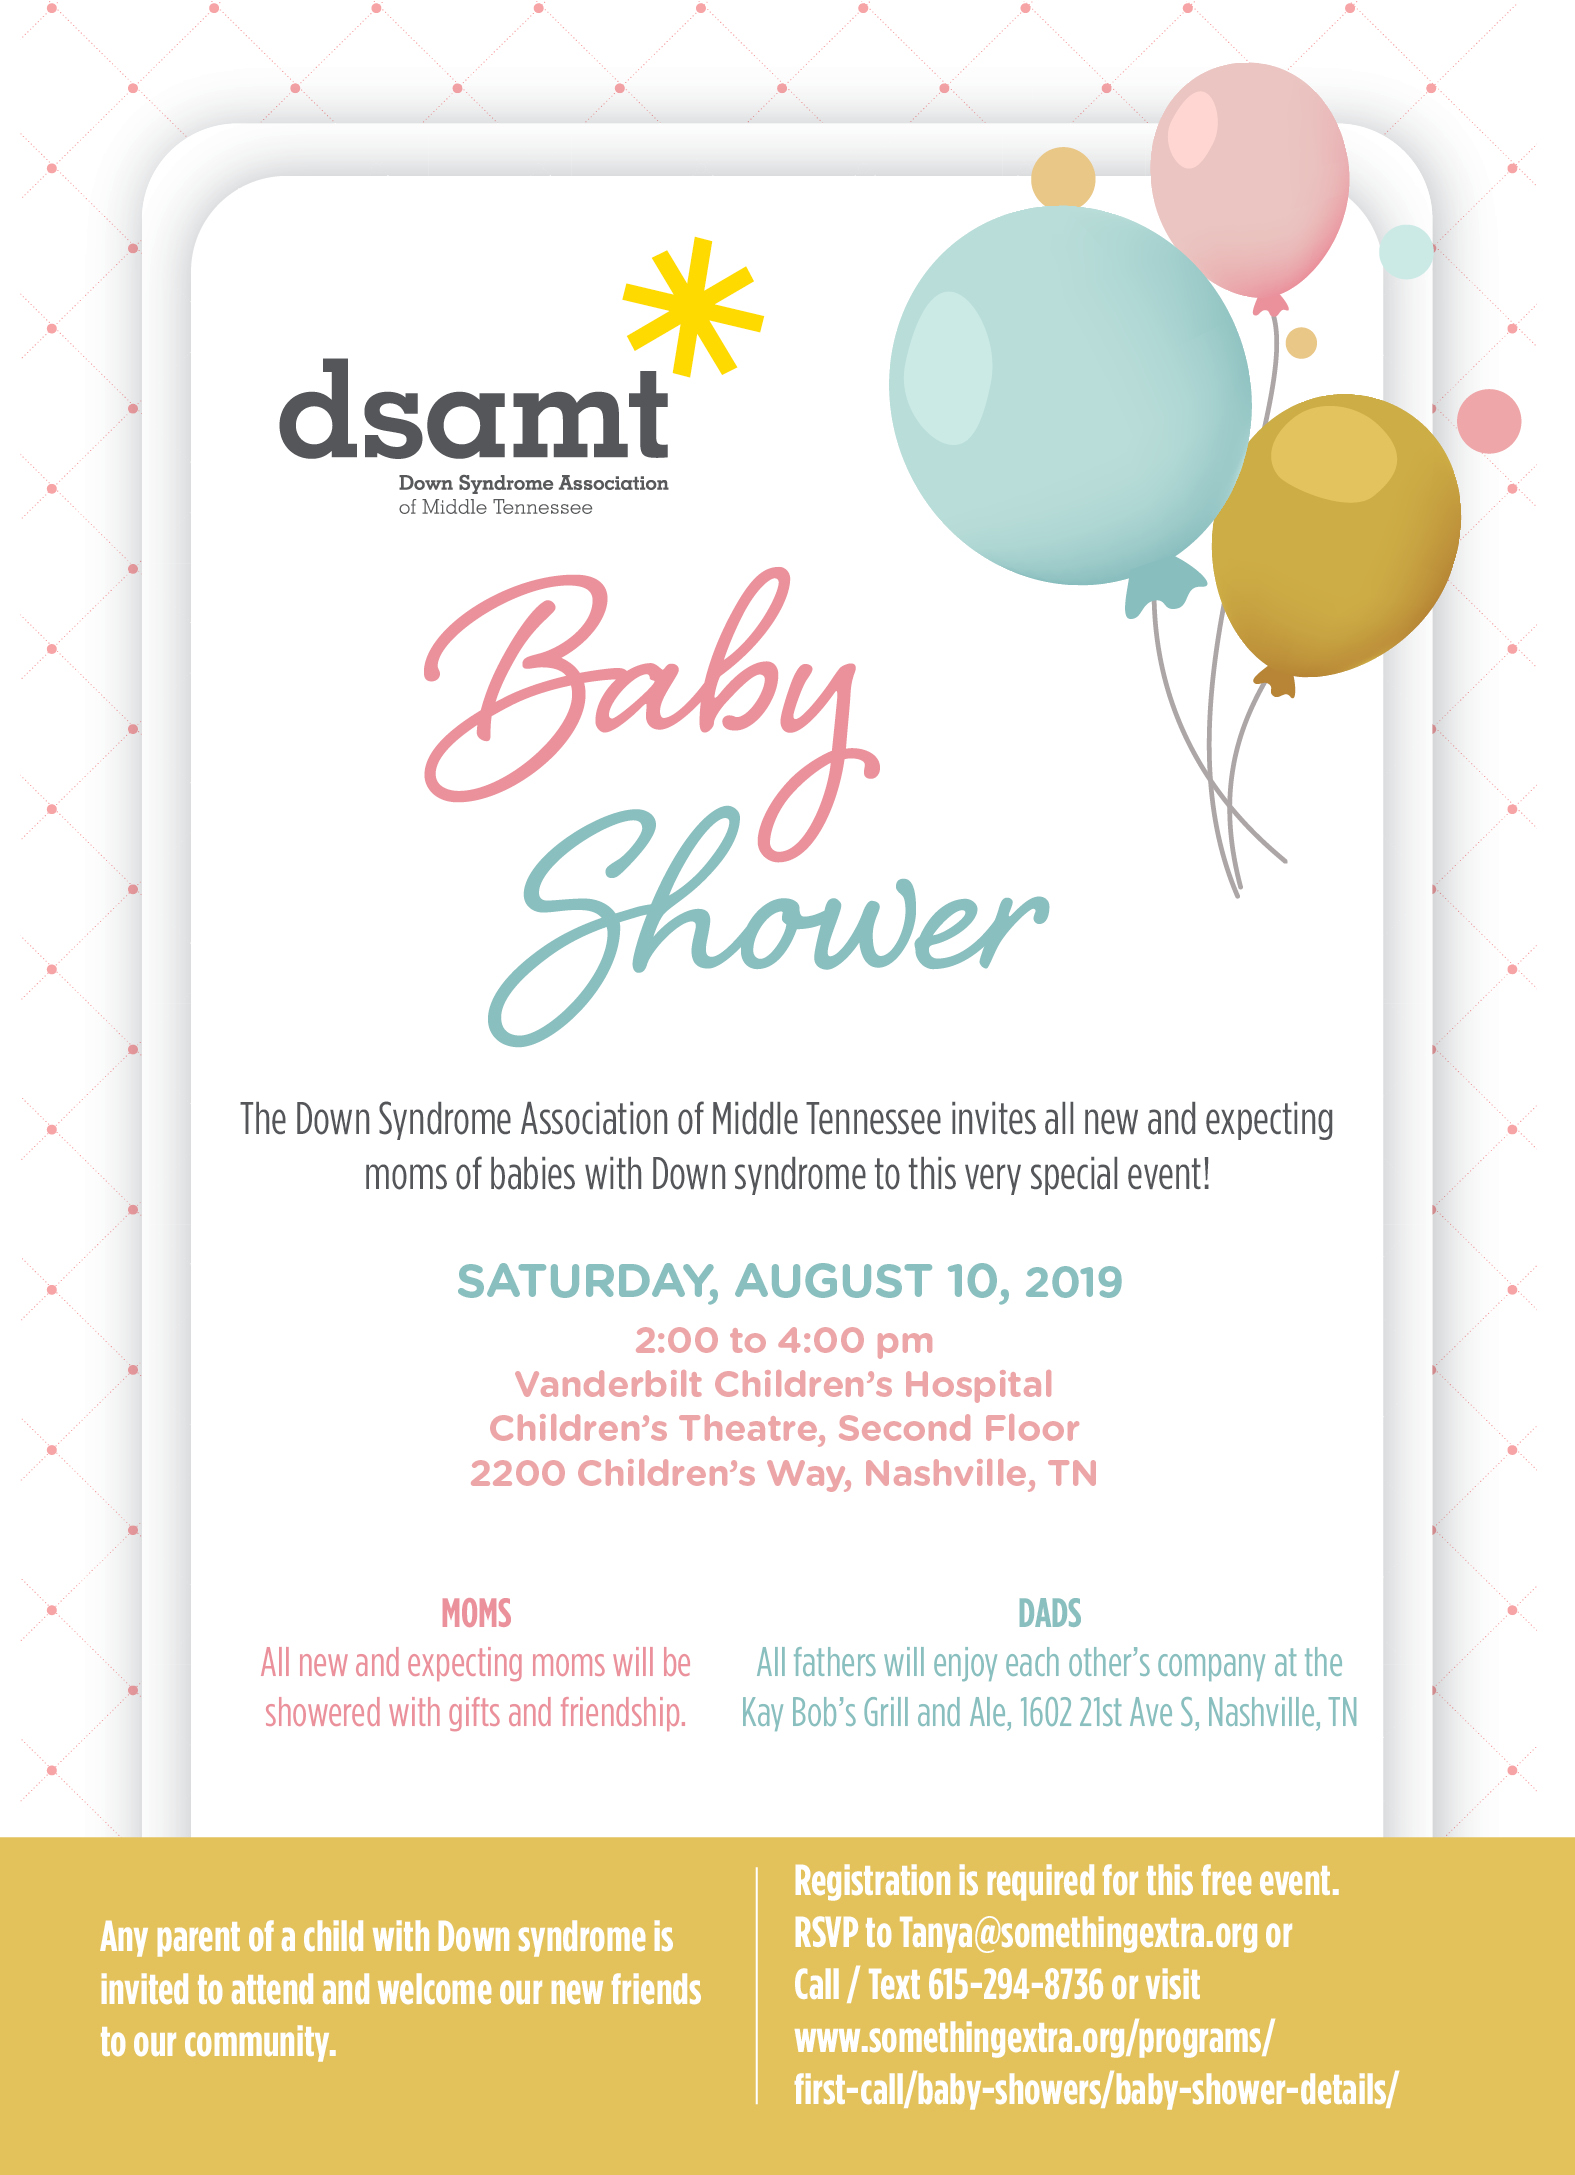 Baby Shower and DADS meeting - DSAMT